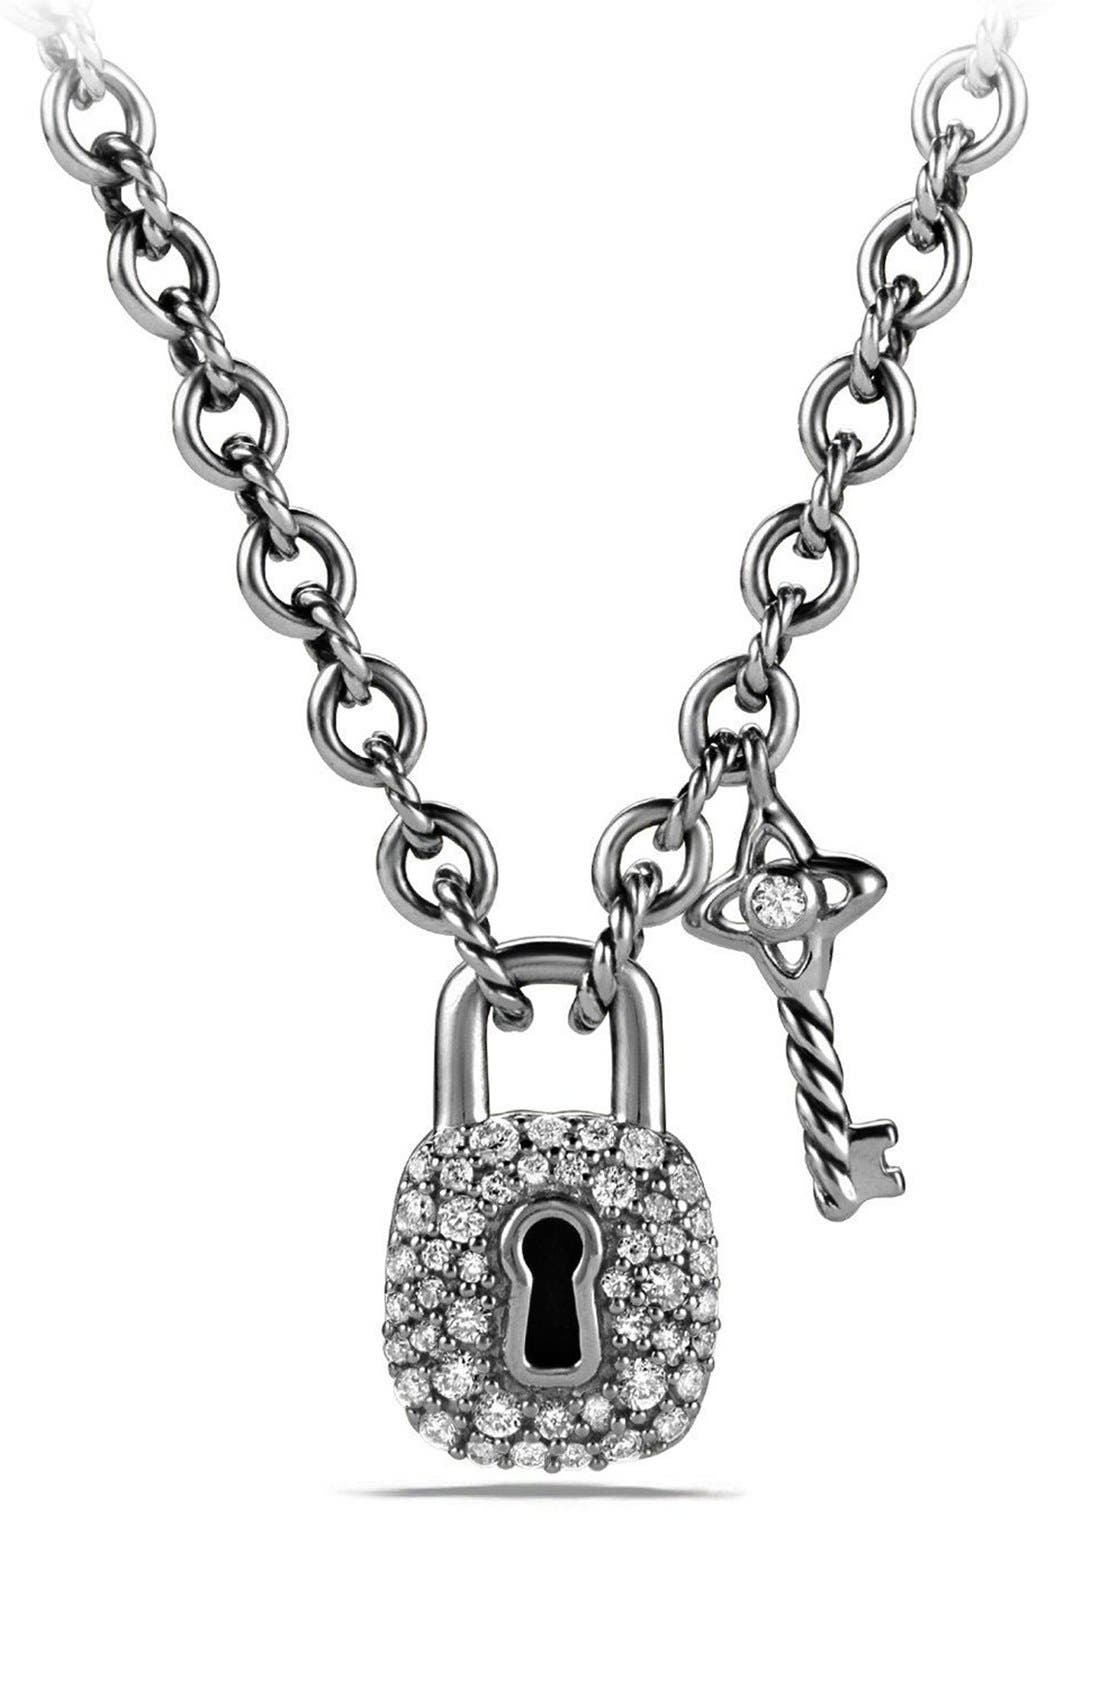 Alternate Image 1 Selected - David Yurman 'Cable Collectibles®' Lock and Key Charm Necklace with Diamonds